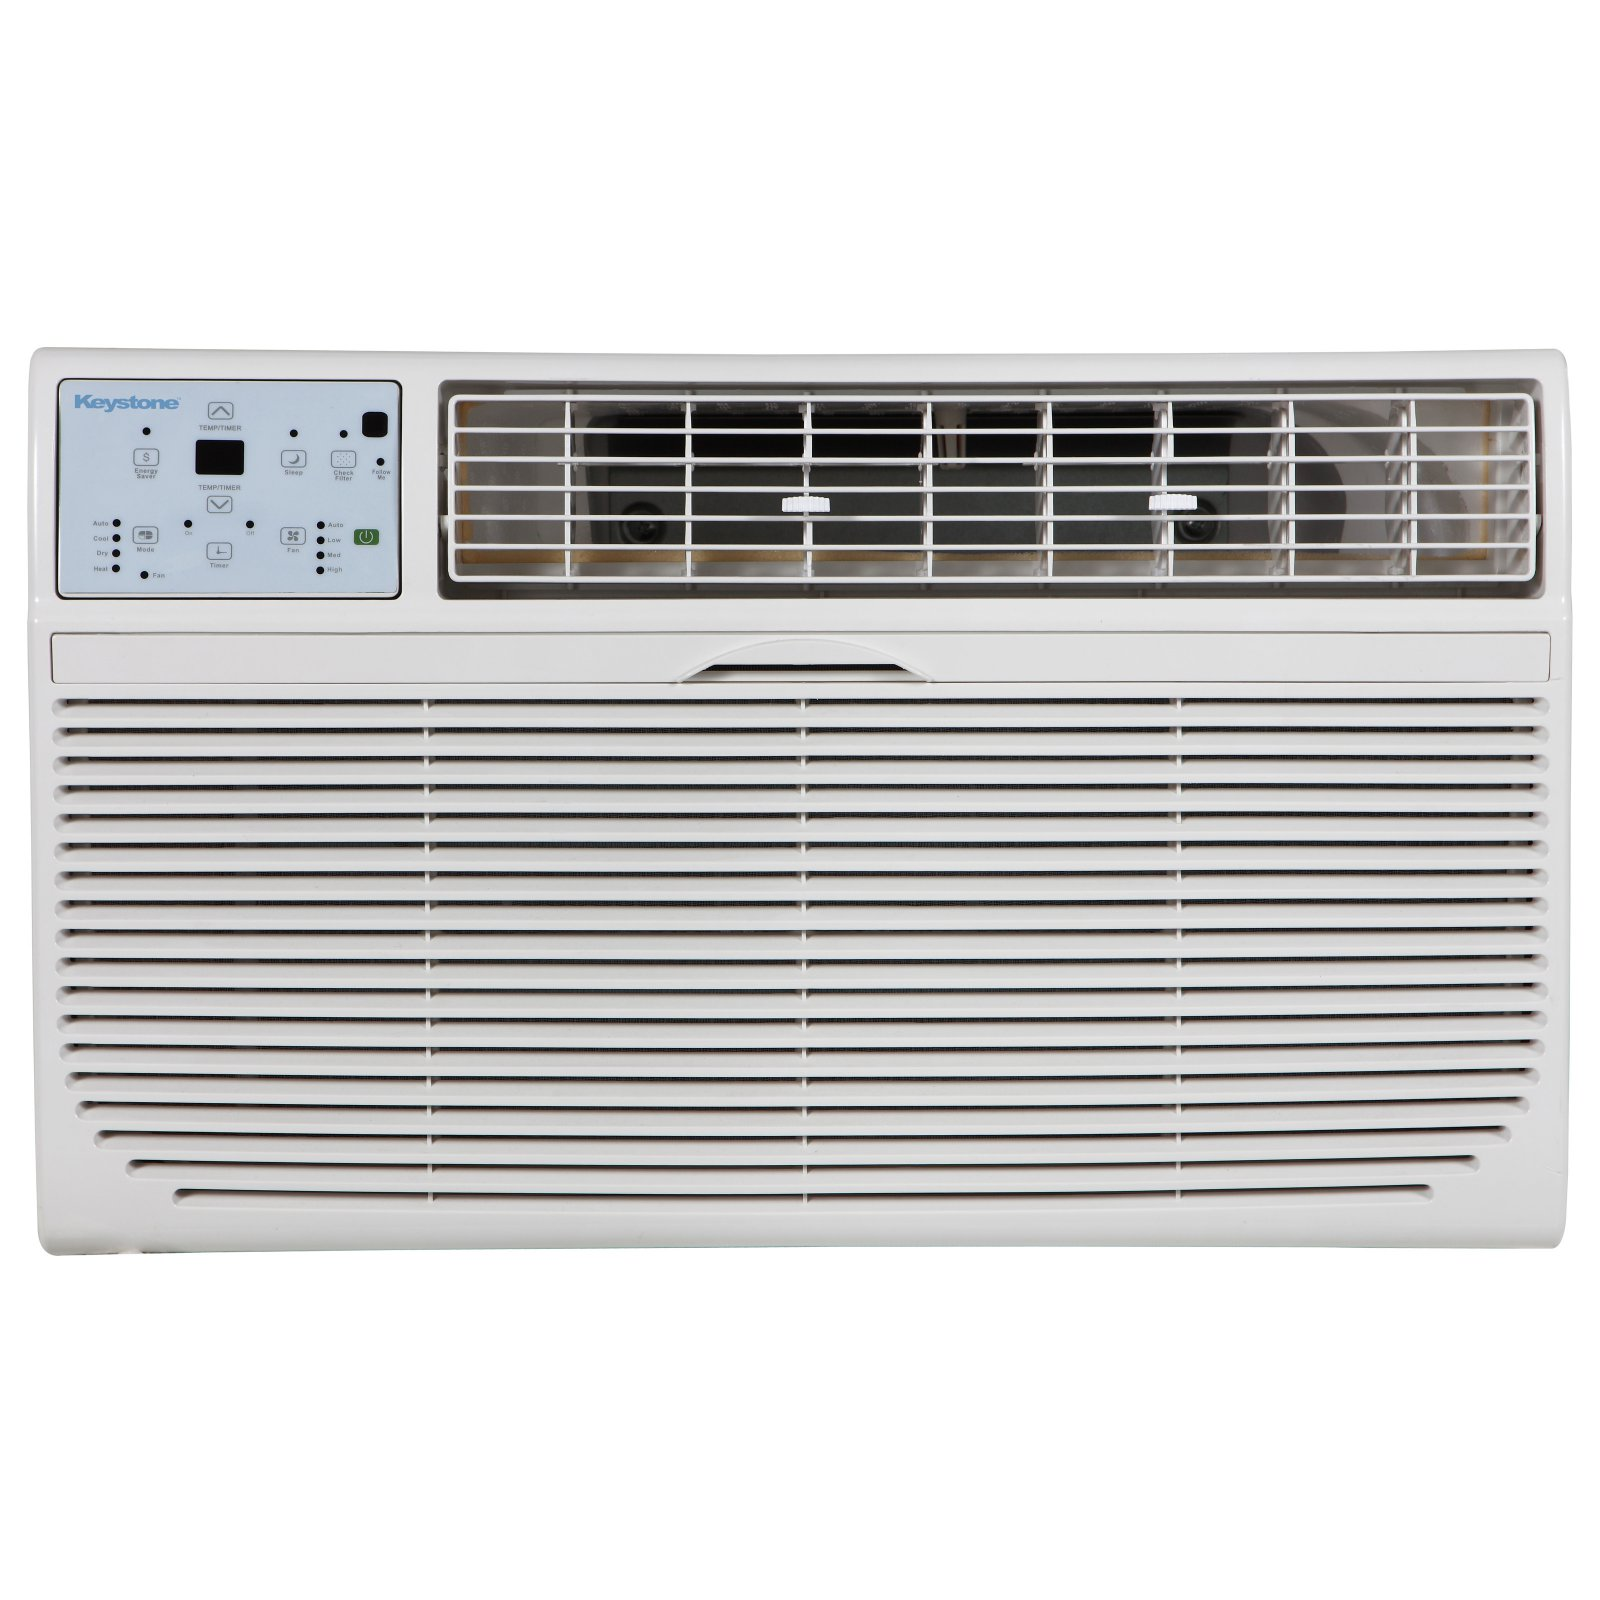 Keystone 8,000-BTU 115V Through-the-Wall Air Conditioner with 4,200-BTU Supplemental Heat Capability